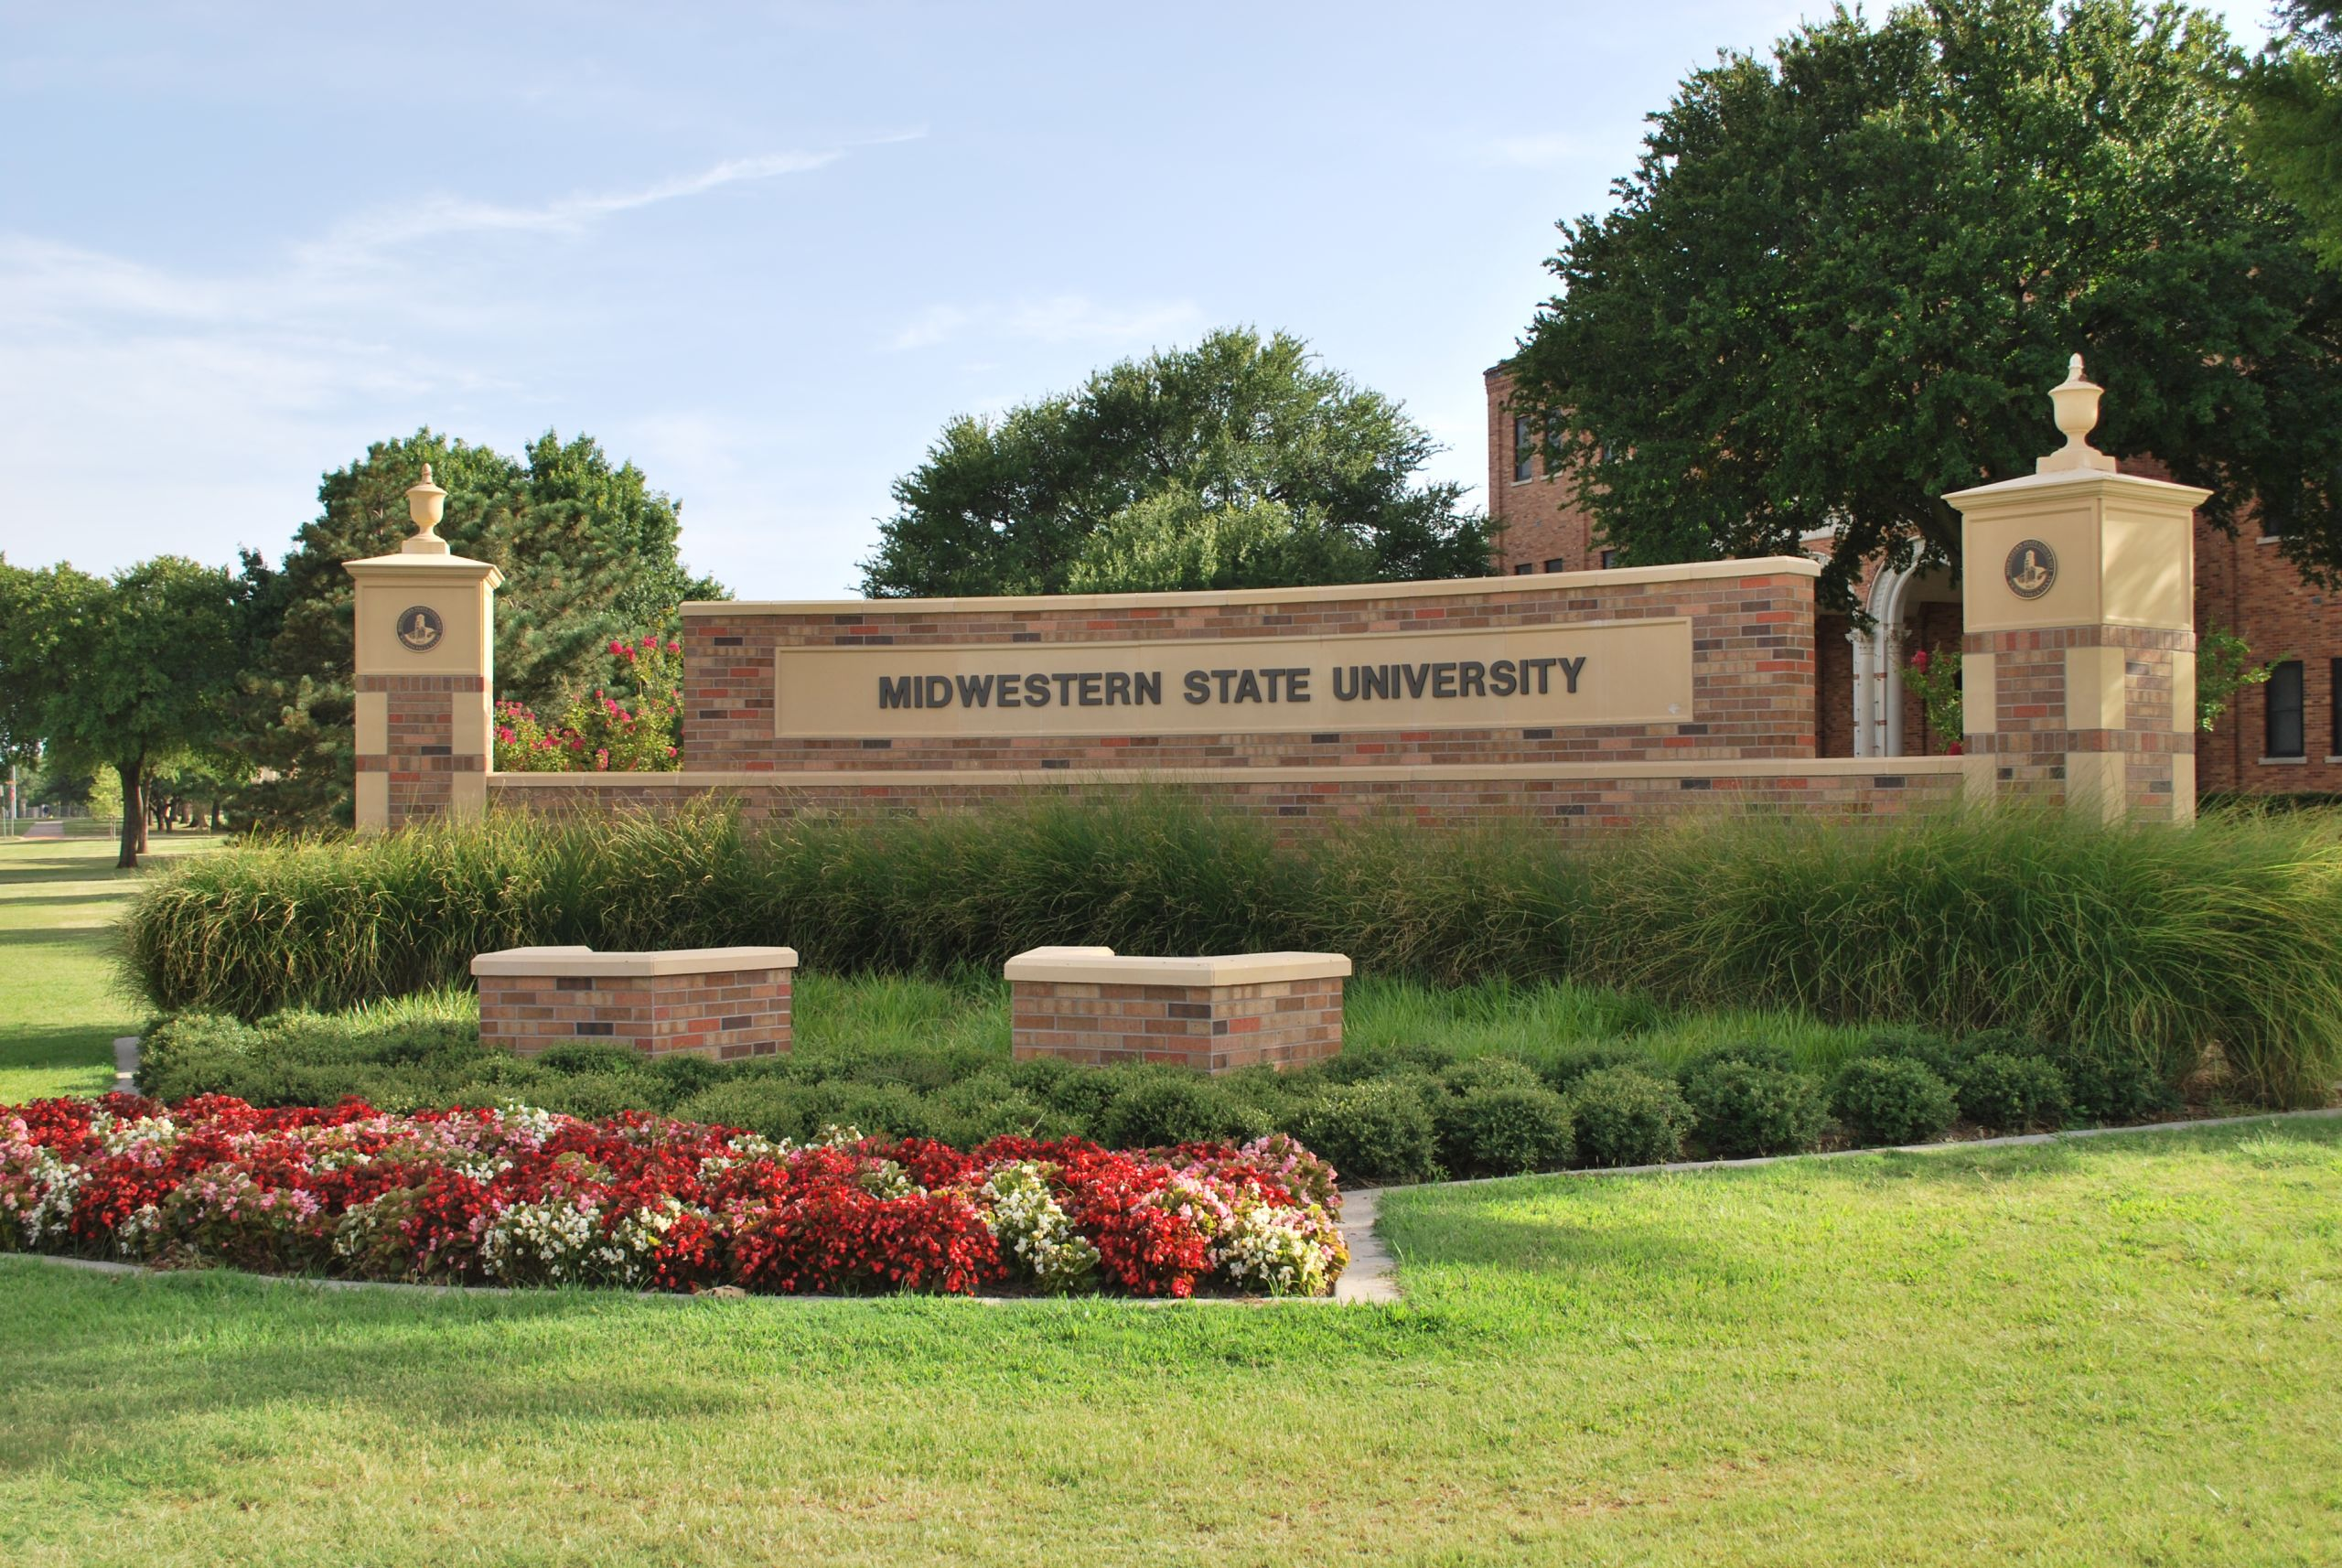 Midwestern State University - Go Mustangs!